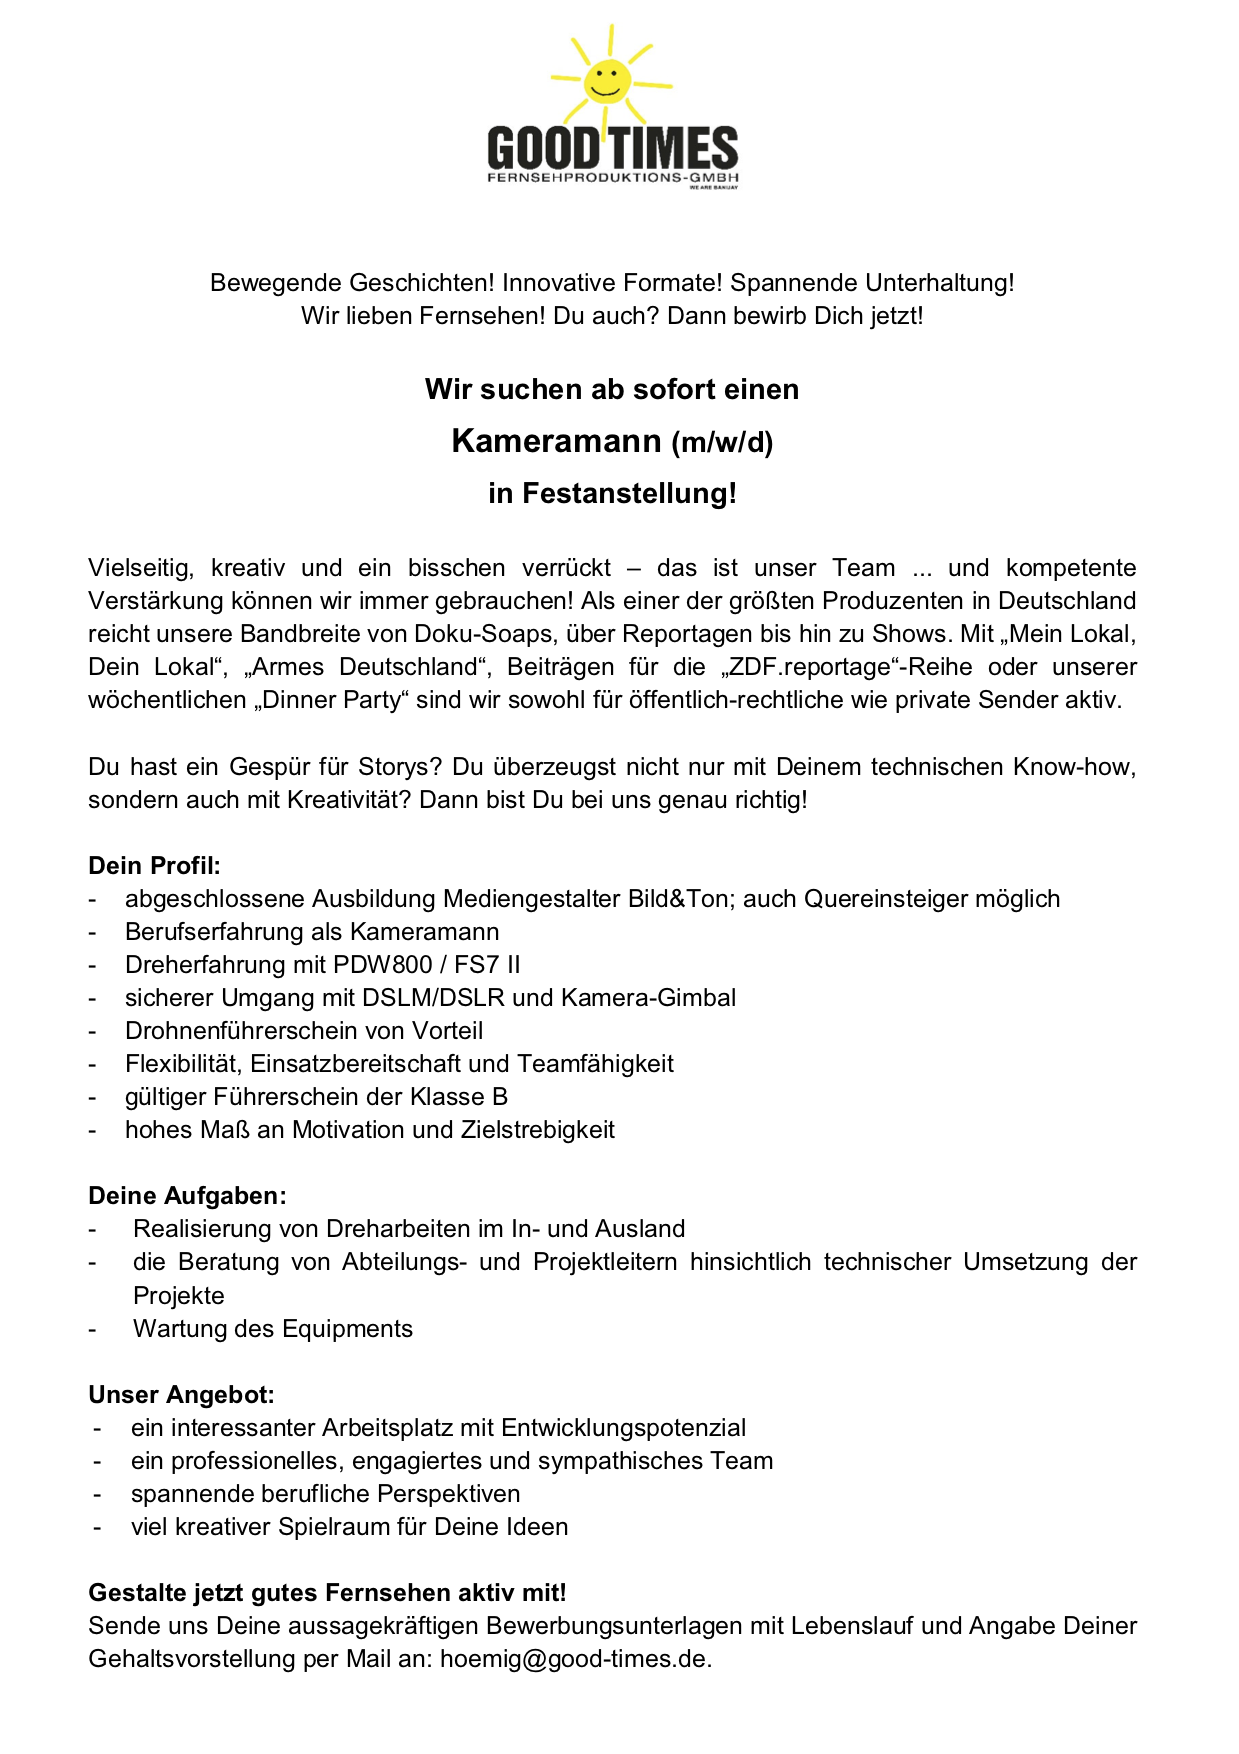 Kameramann (m/w/d) in Festanstellung